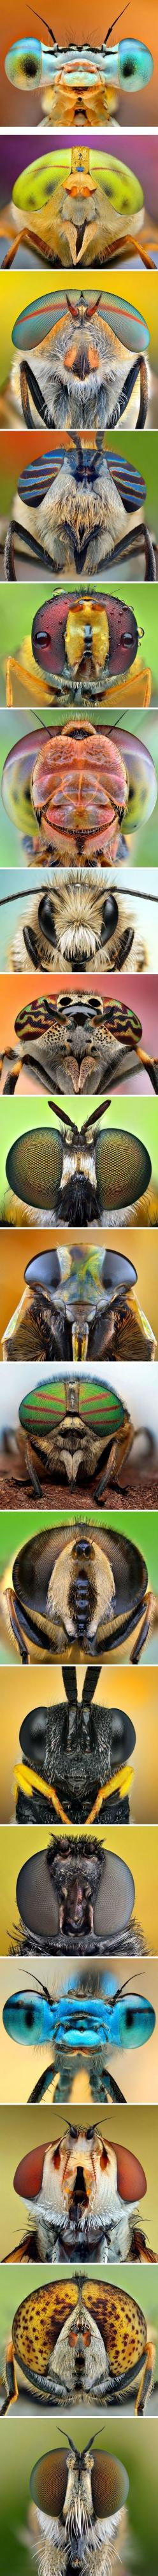 IPhotographer Ireneusz Irass Waledzik - collection of fascinating facet eyes of dragonflies, bees and flies.: Facet Eyes, Watercolor Project, Macro Photography, Insects And Bugs, Amazing Eyes, Insect Face, Animal